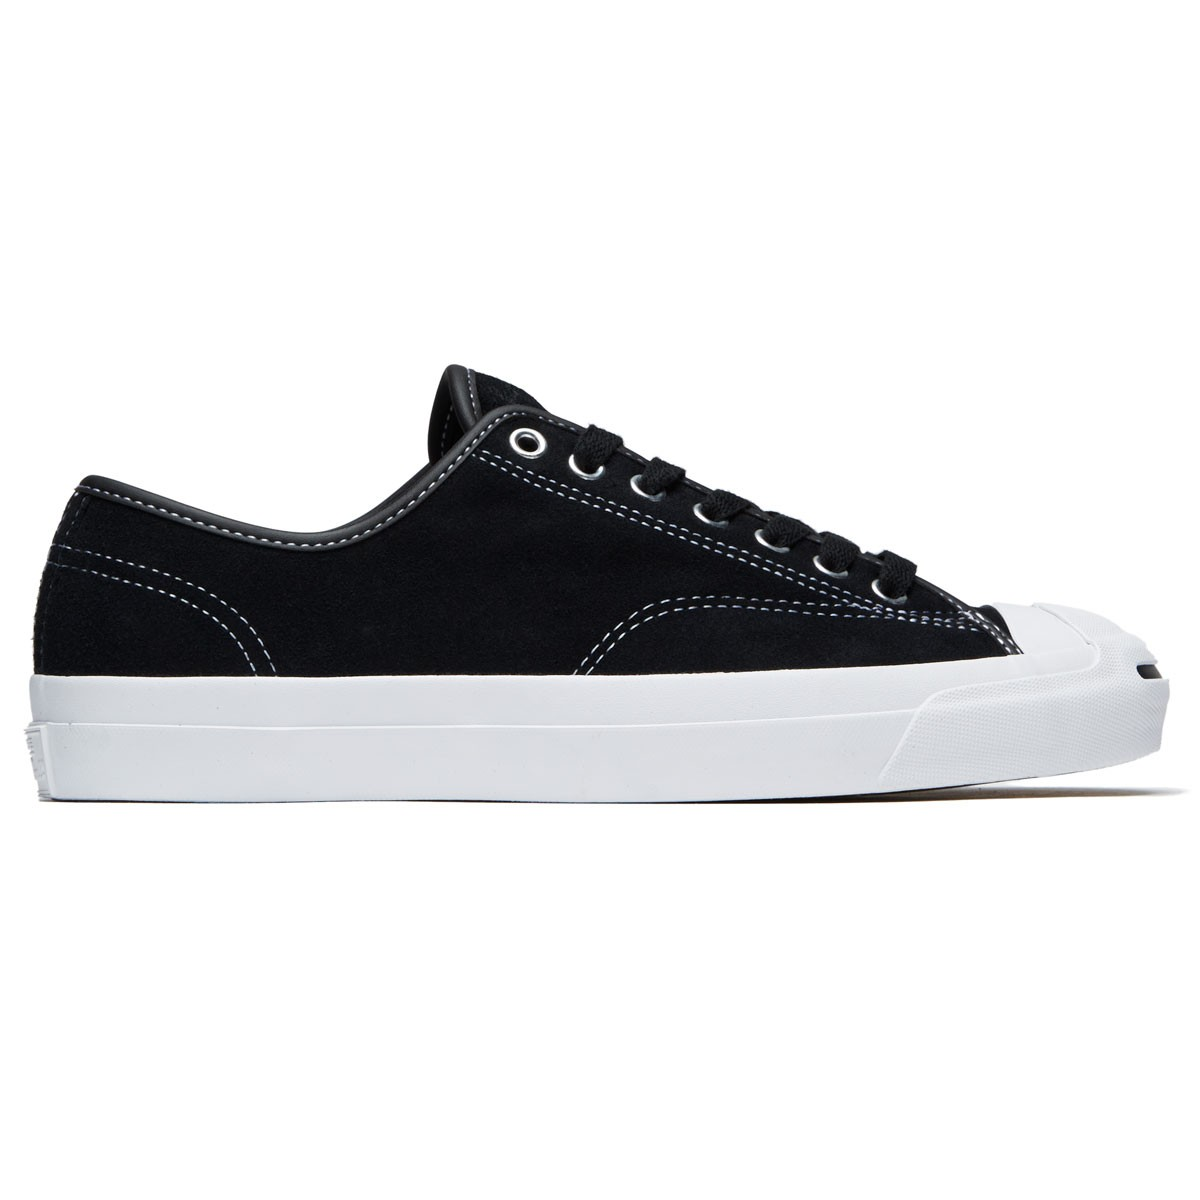 d7f90fd10502 Converse Jack Purcell Pro Shoes - Black Black White Suede - 7.0